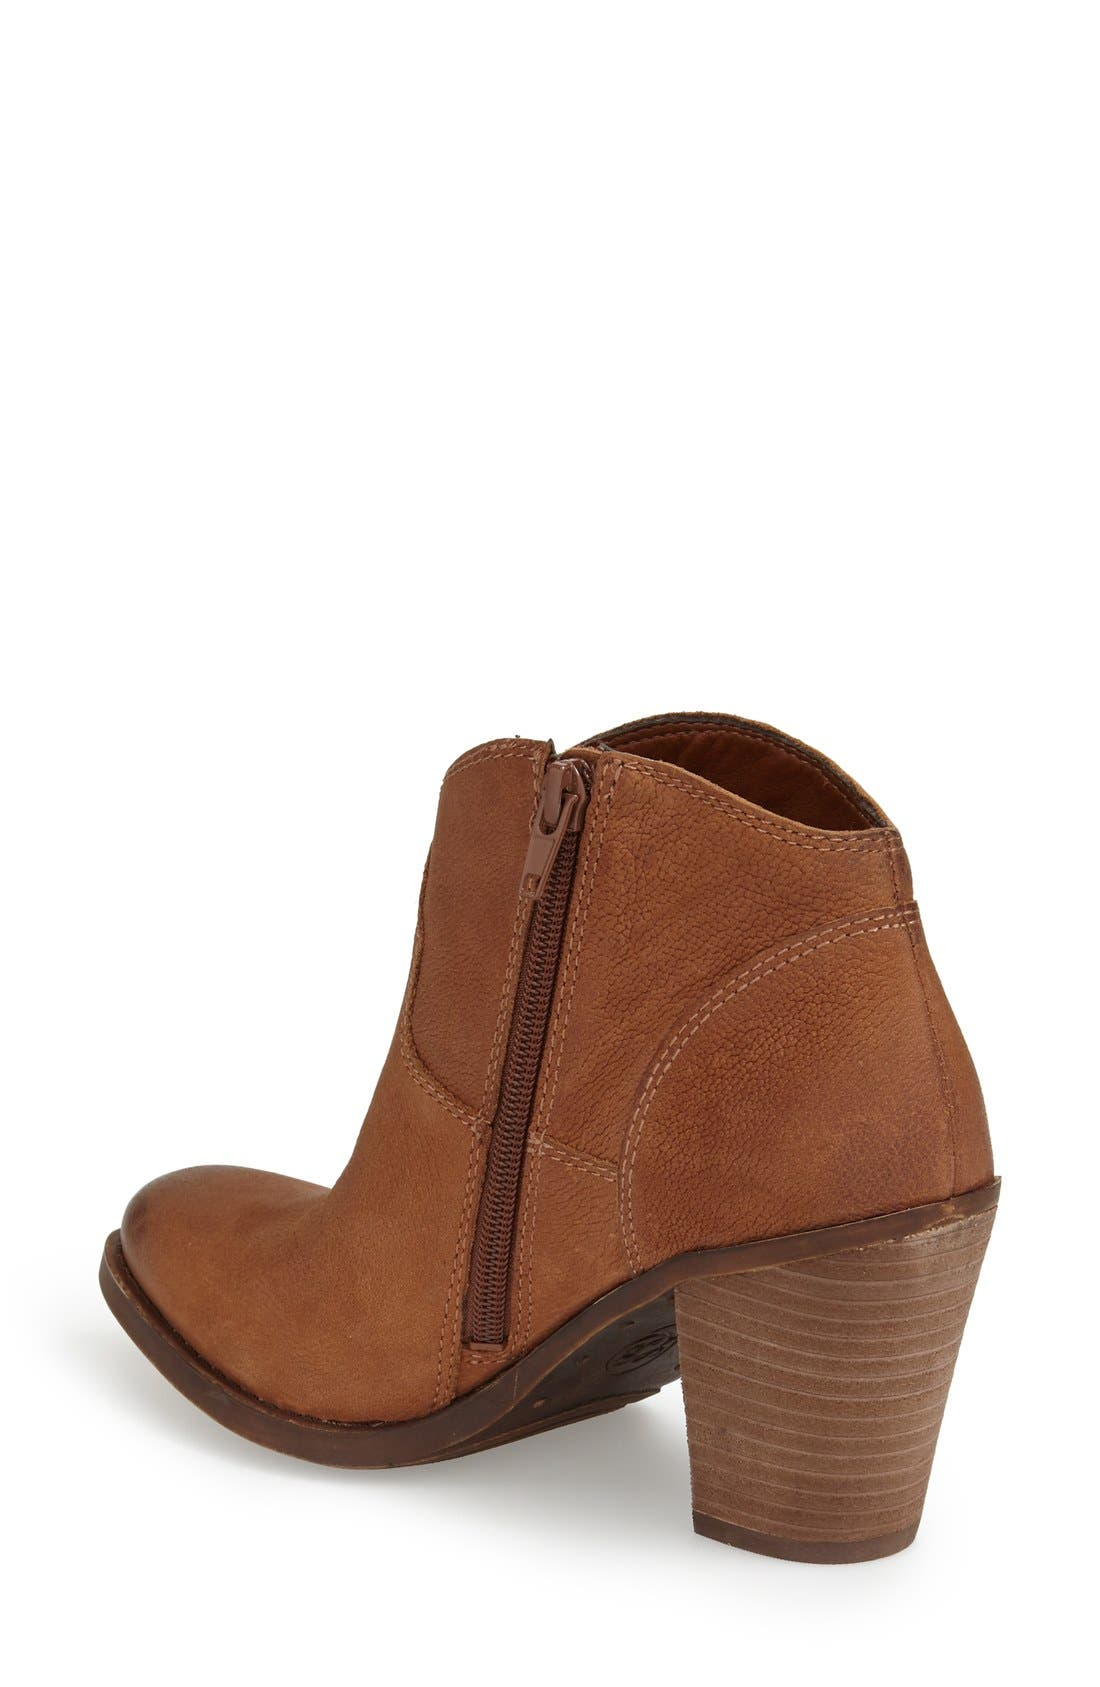 'Eller' Bootie,                             Alternate thumbnail 2, color,                             Toffee Leather